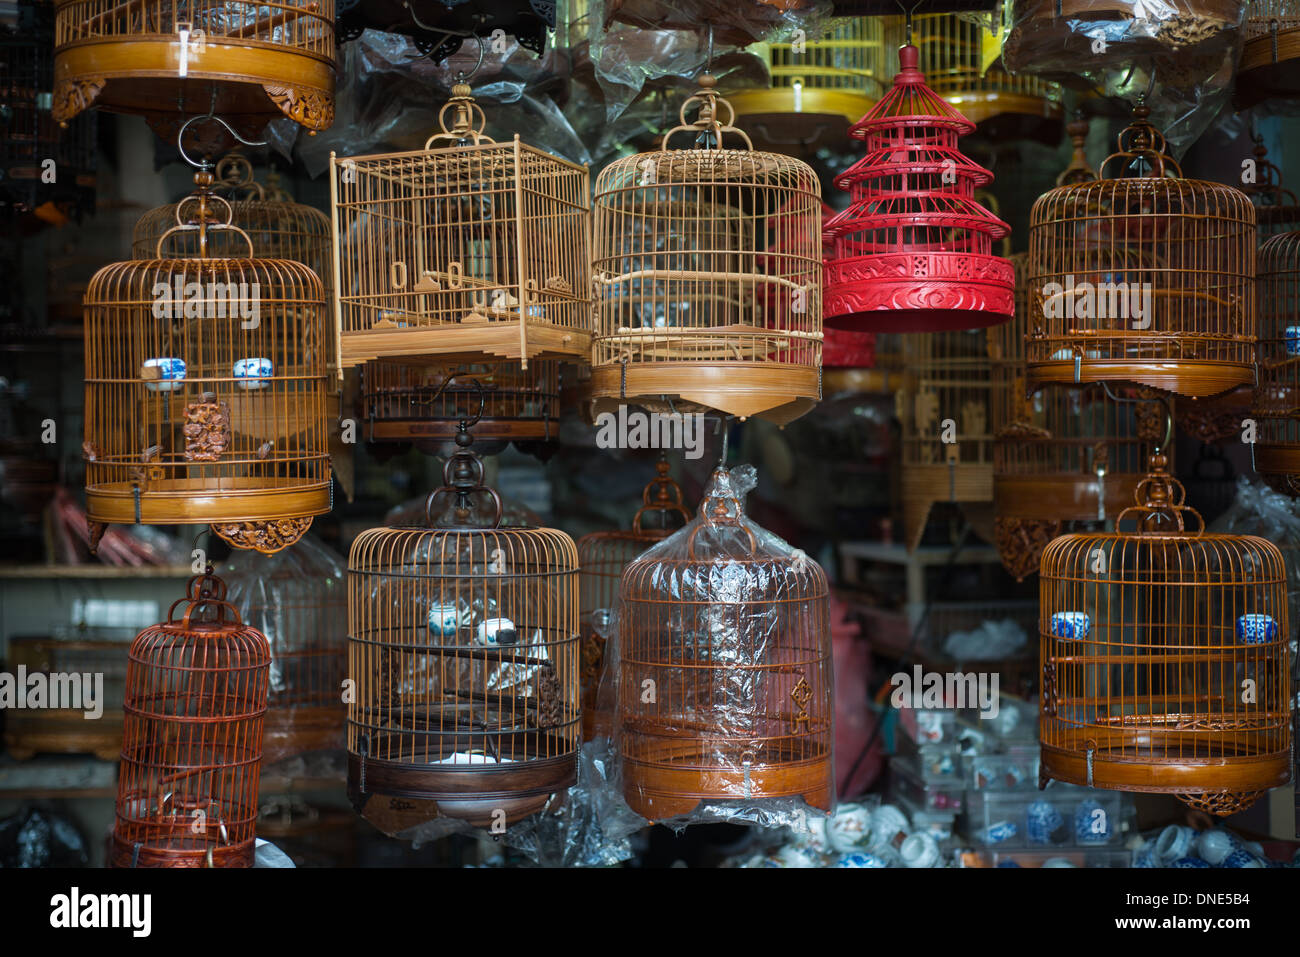 Birdcages - Stock Image